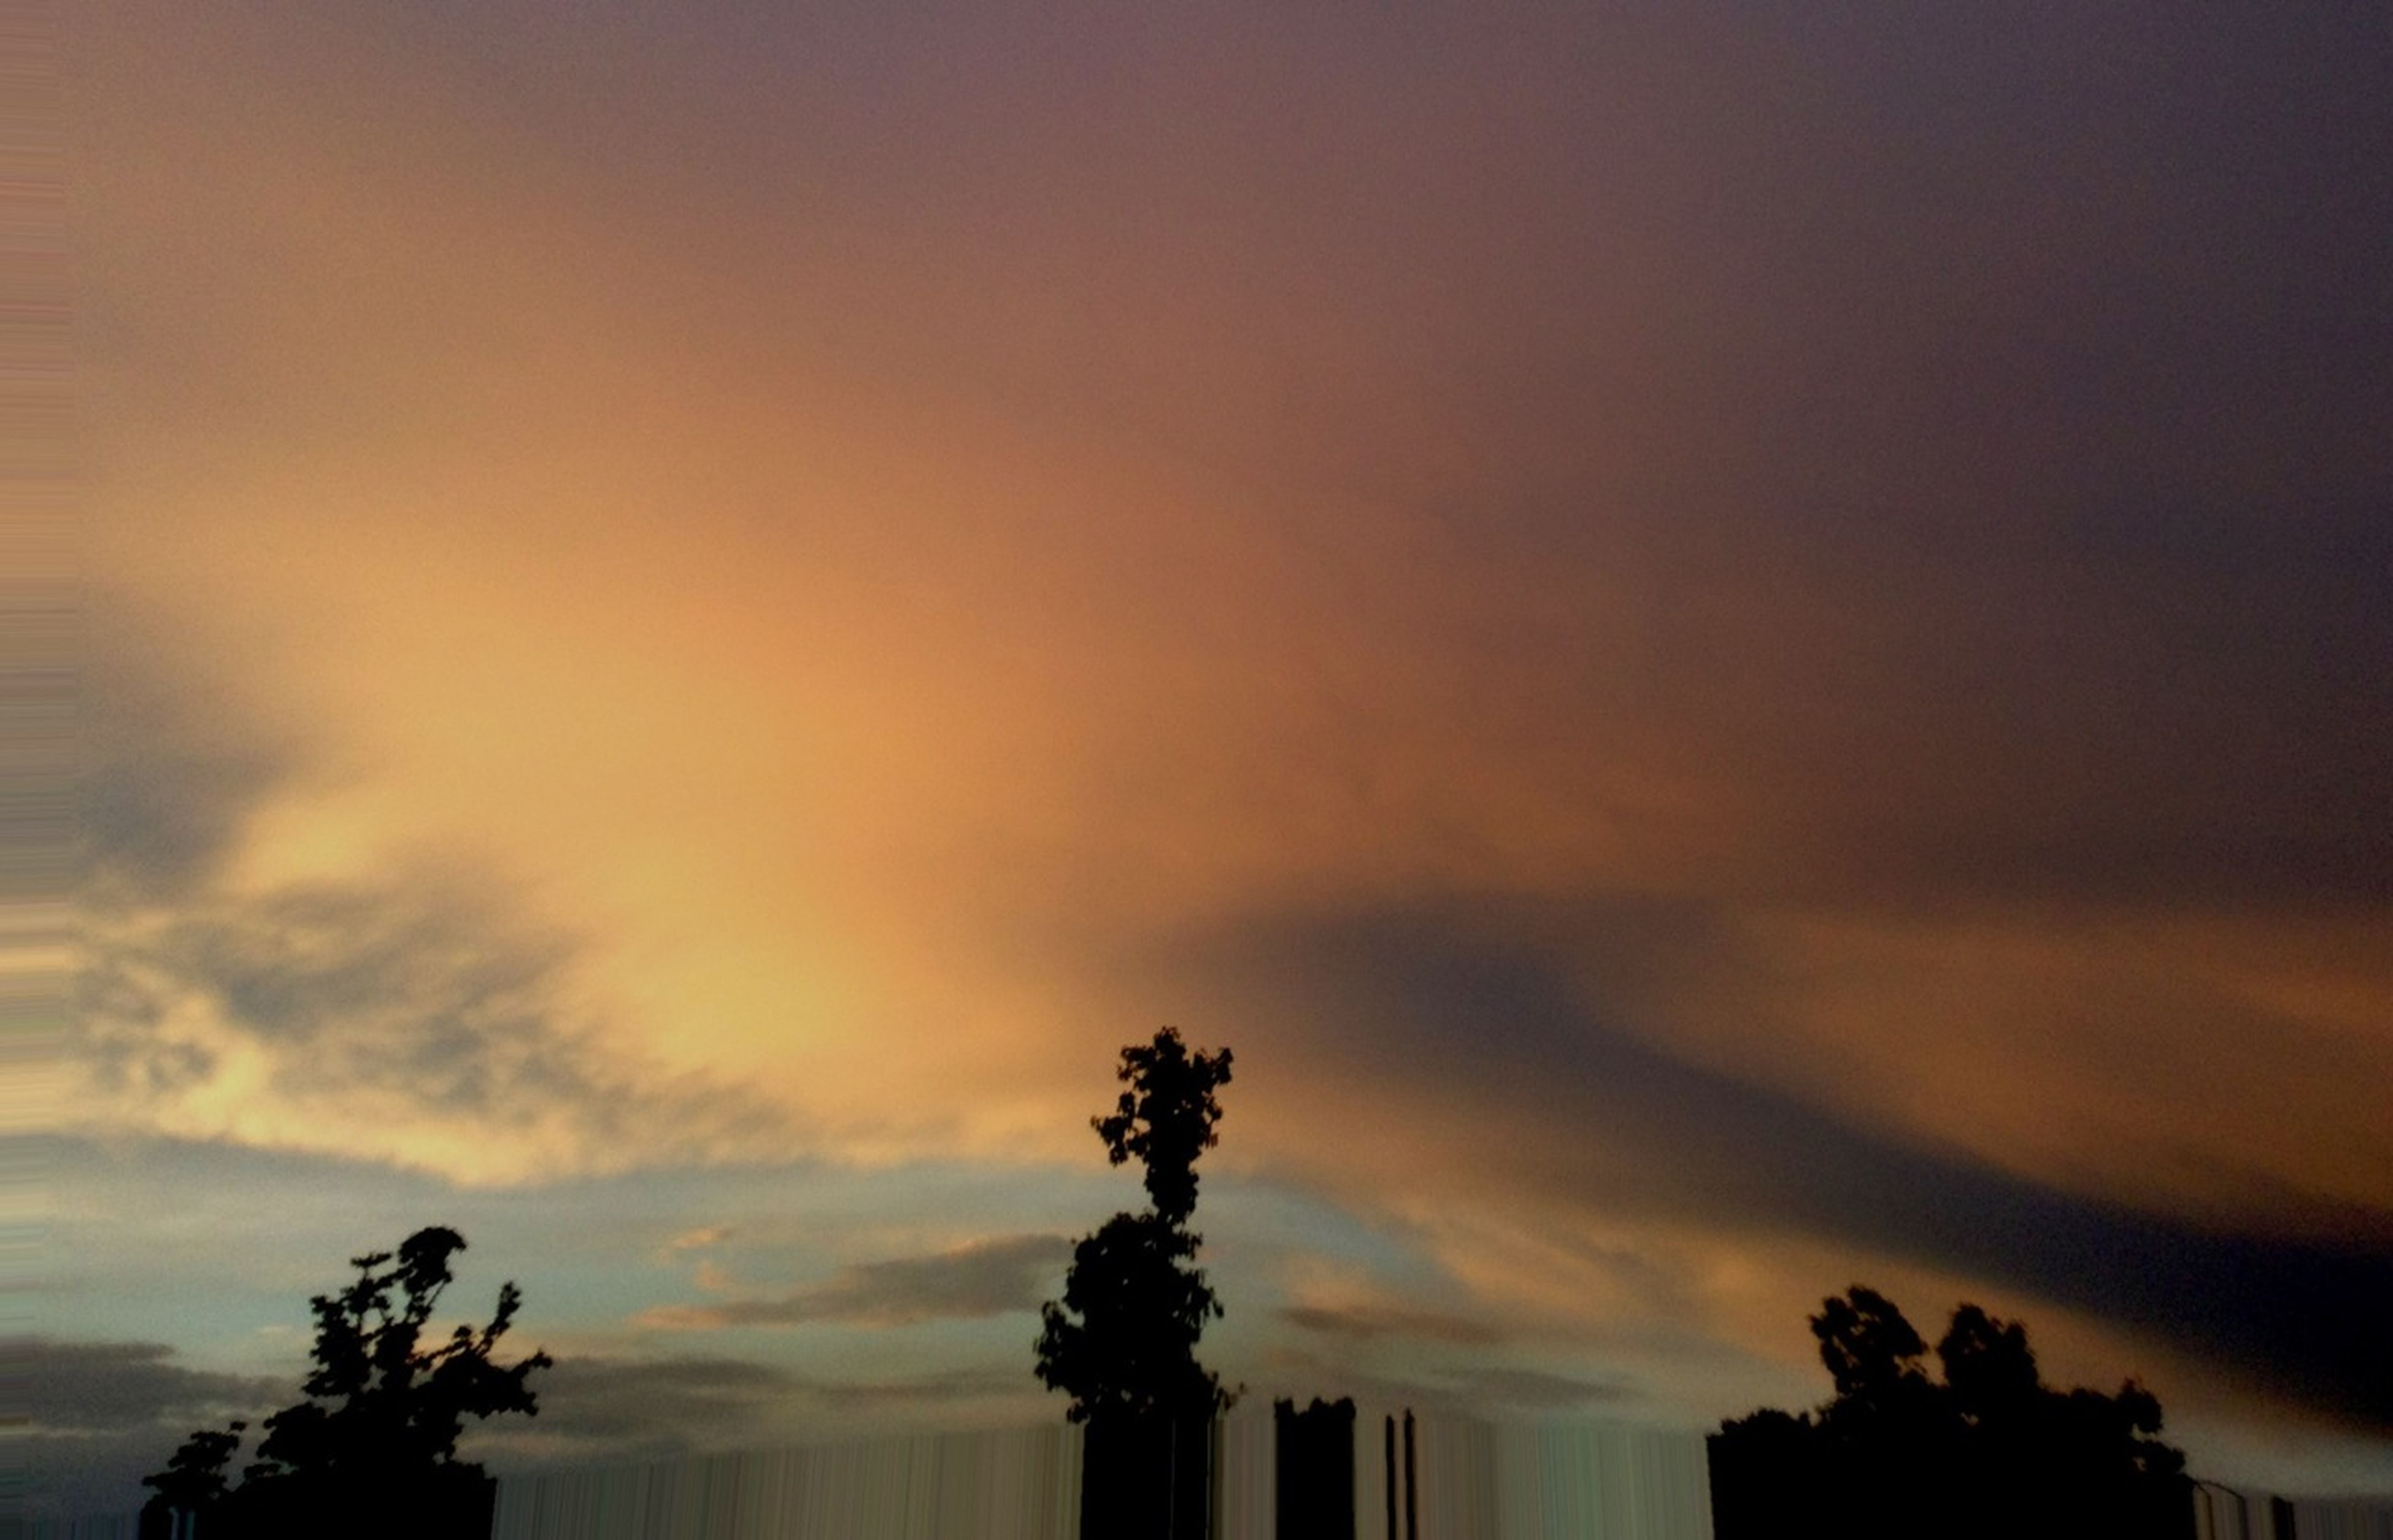 sky, low angle view, sunset, silhouette, cloud - sky, tree, built structure, architecture, cloudy, building exterior, beauty in nature, nature, scenics, dusk, cloud, tranquility, high section, outdoors, weather, tranquil scene